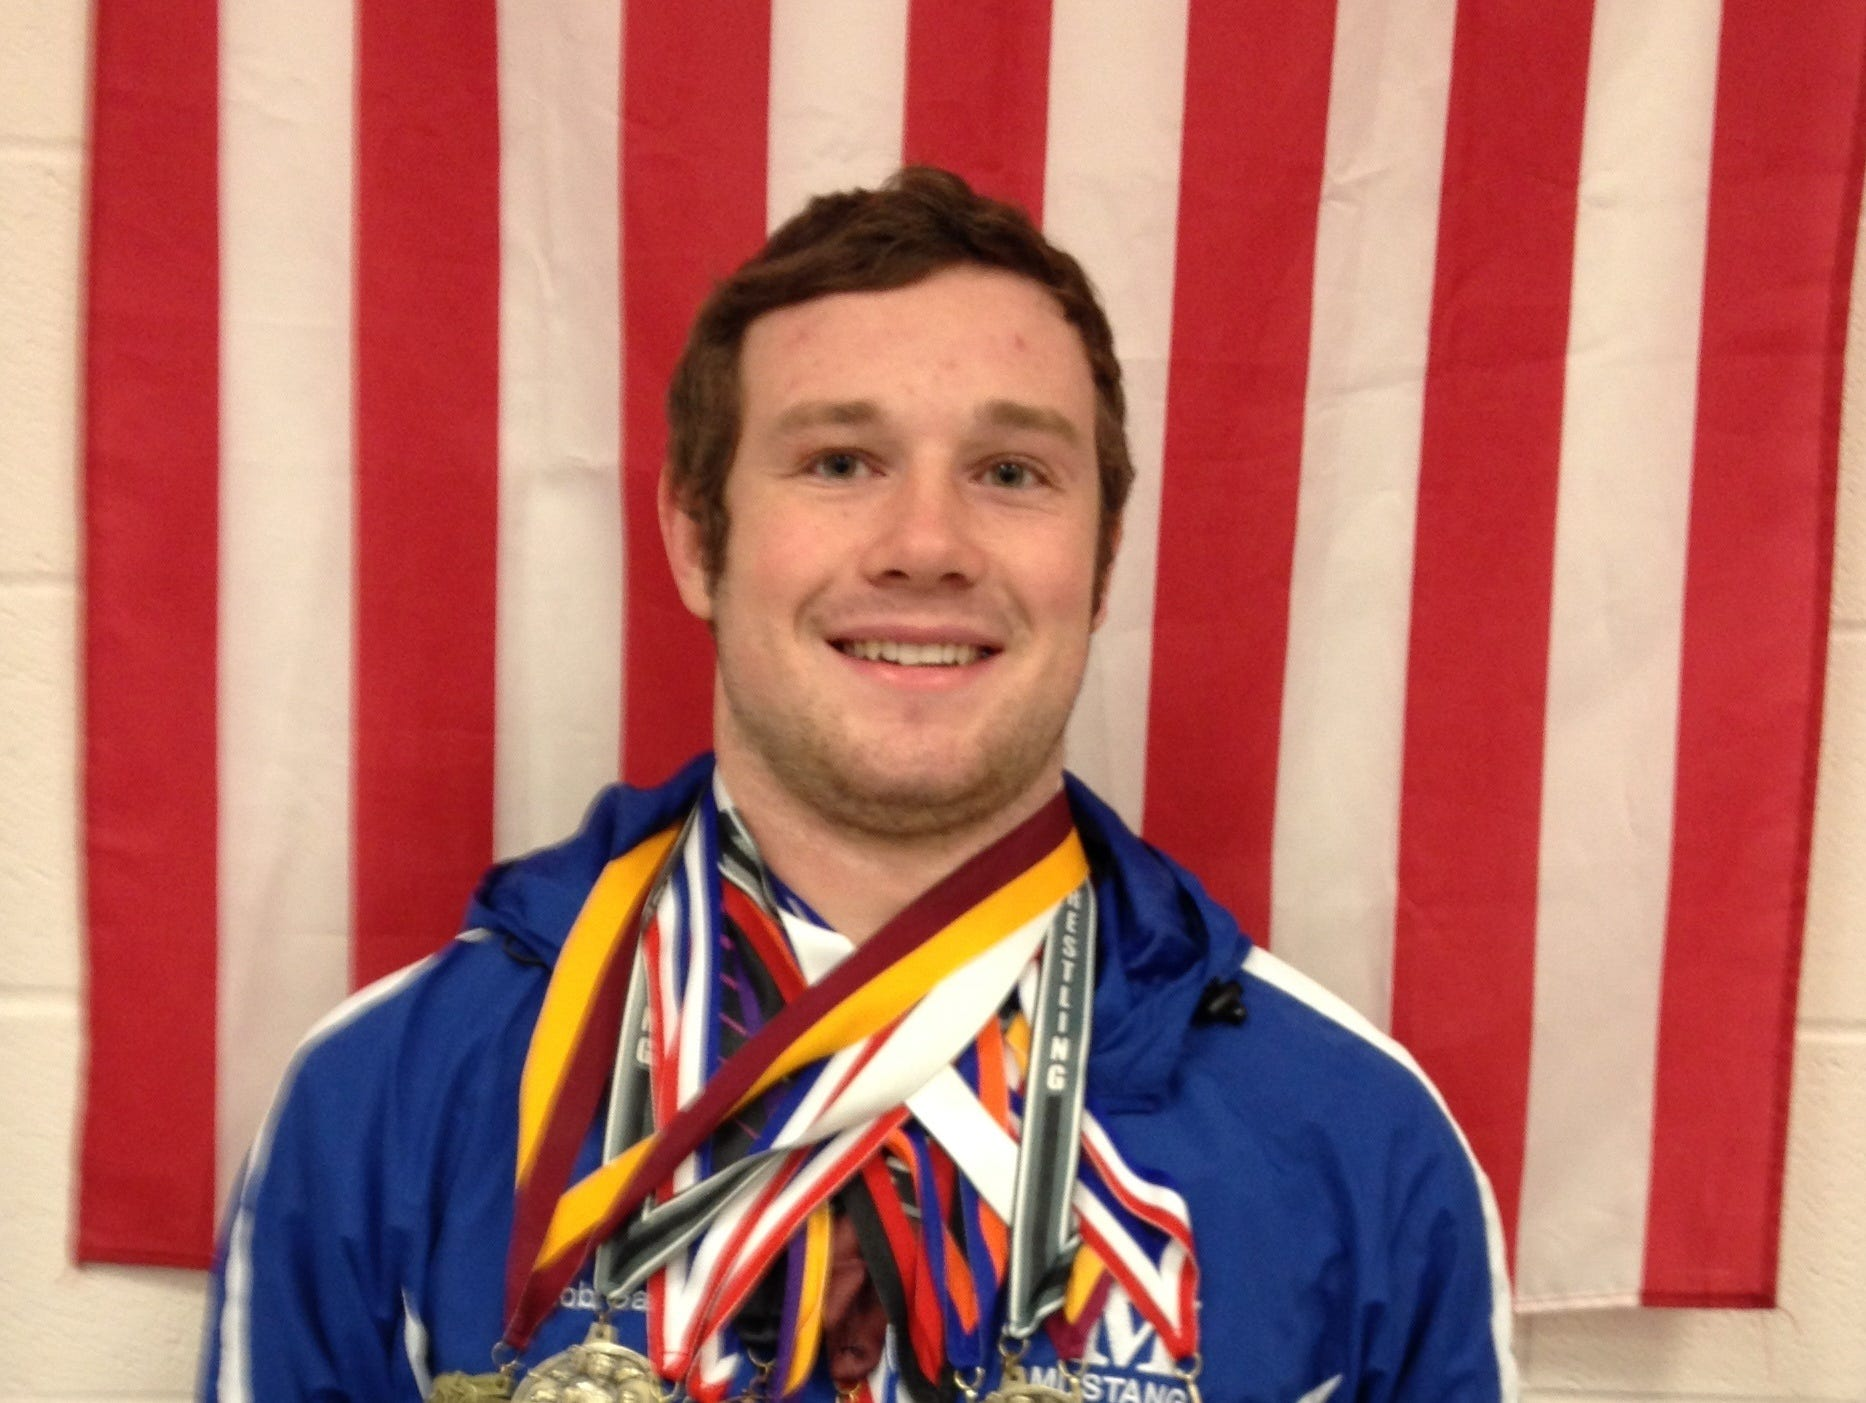 Recent Smoky Mountain graduate Jacob Gass has signed to wrestle in college for Truett-McConnell (Ga.).